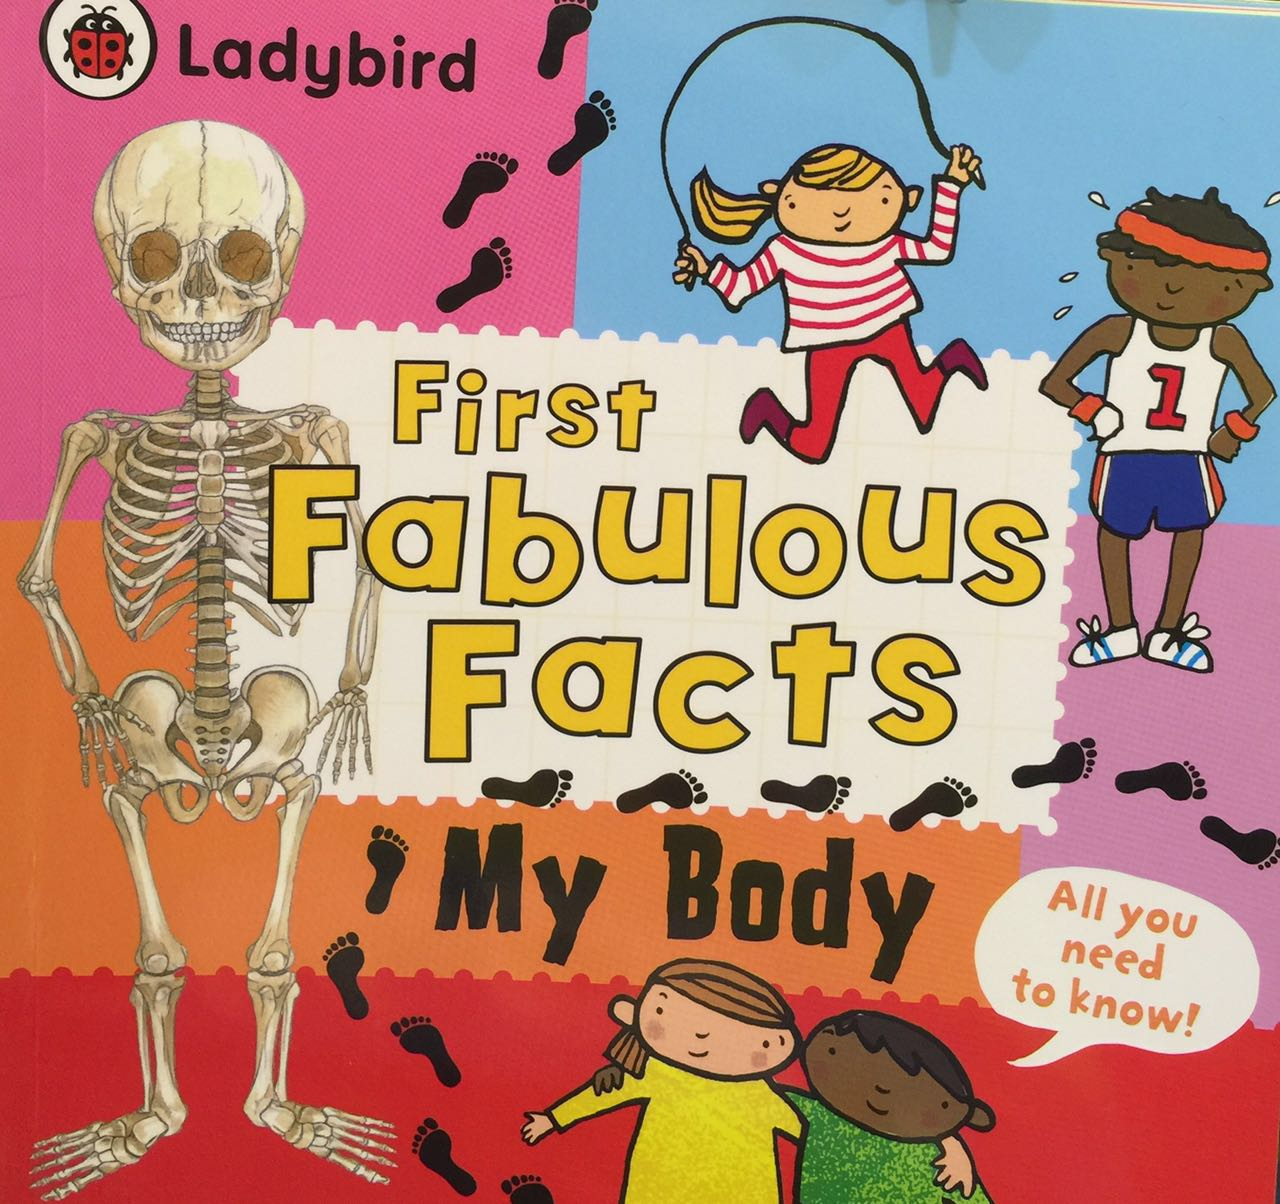 Ladybird - First Fabulous Facts My Body